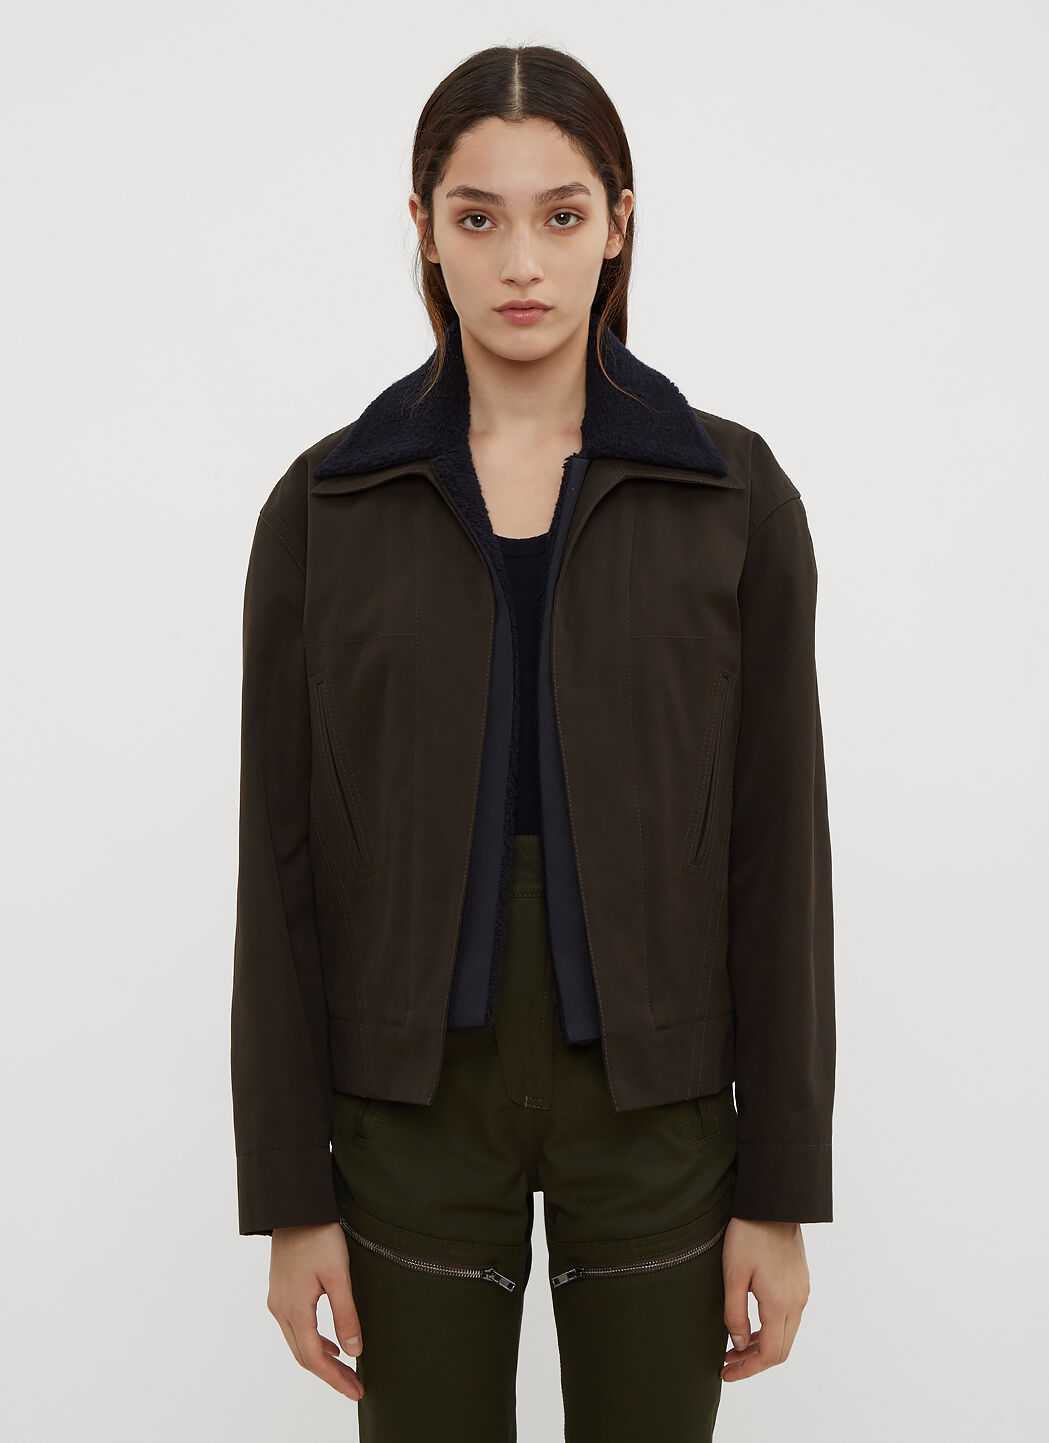 Double Black Layer Cropped LN in Atlein Jacket CC qU8nw5